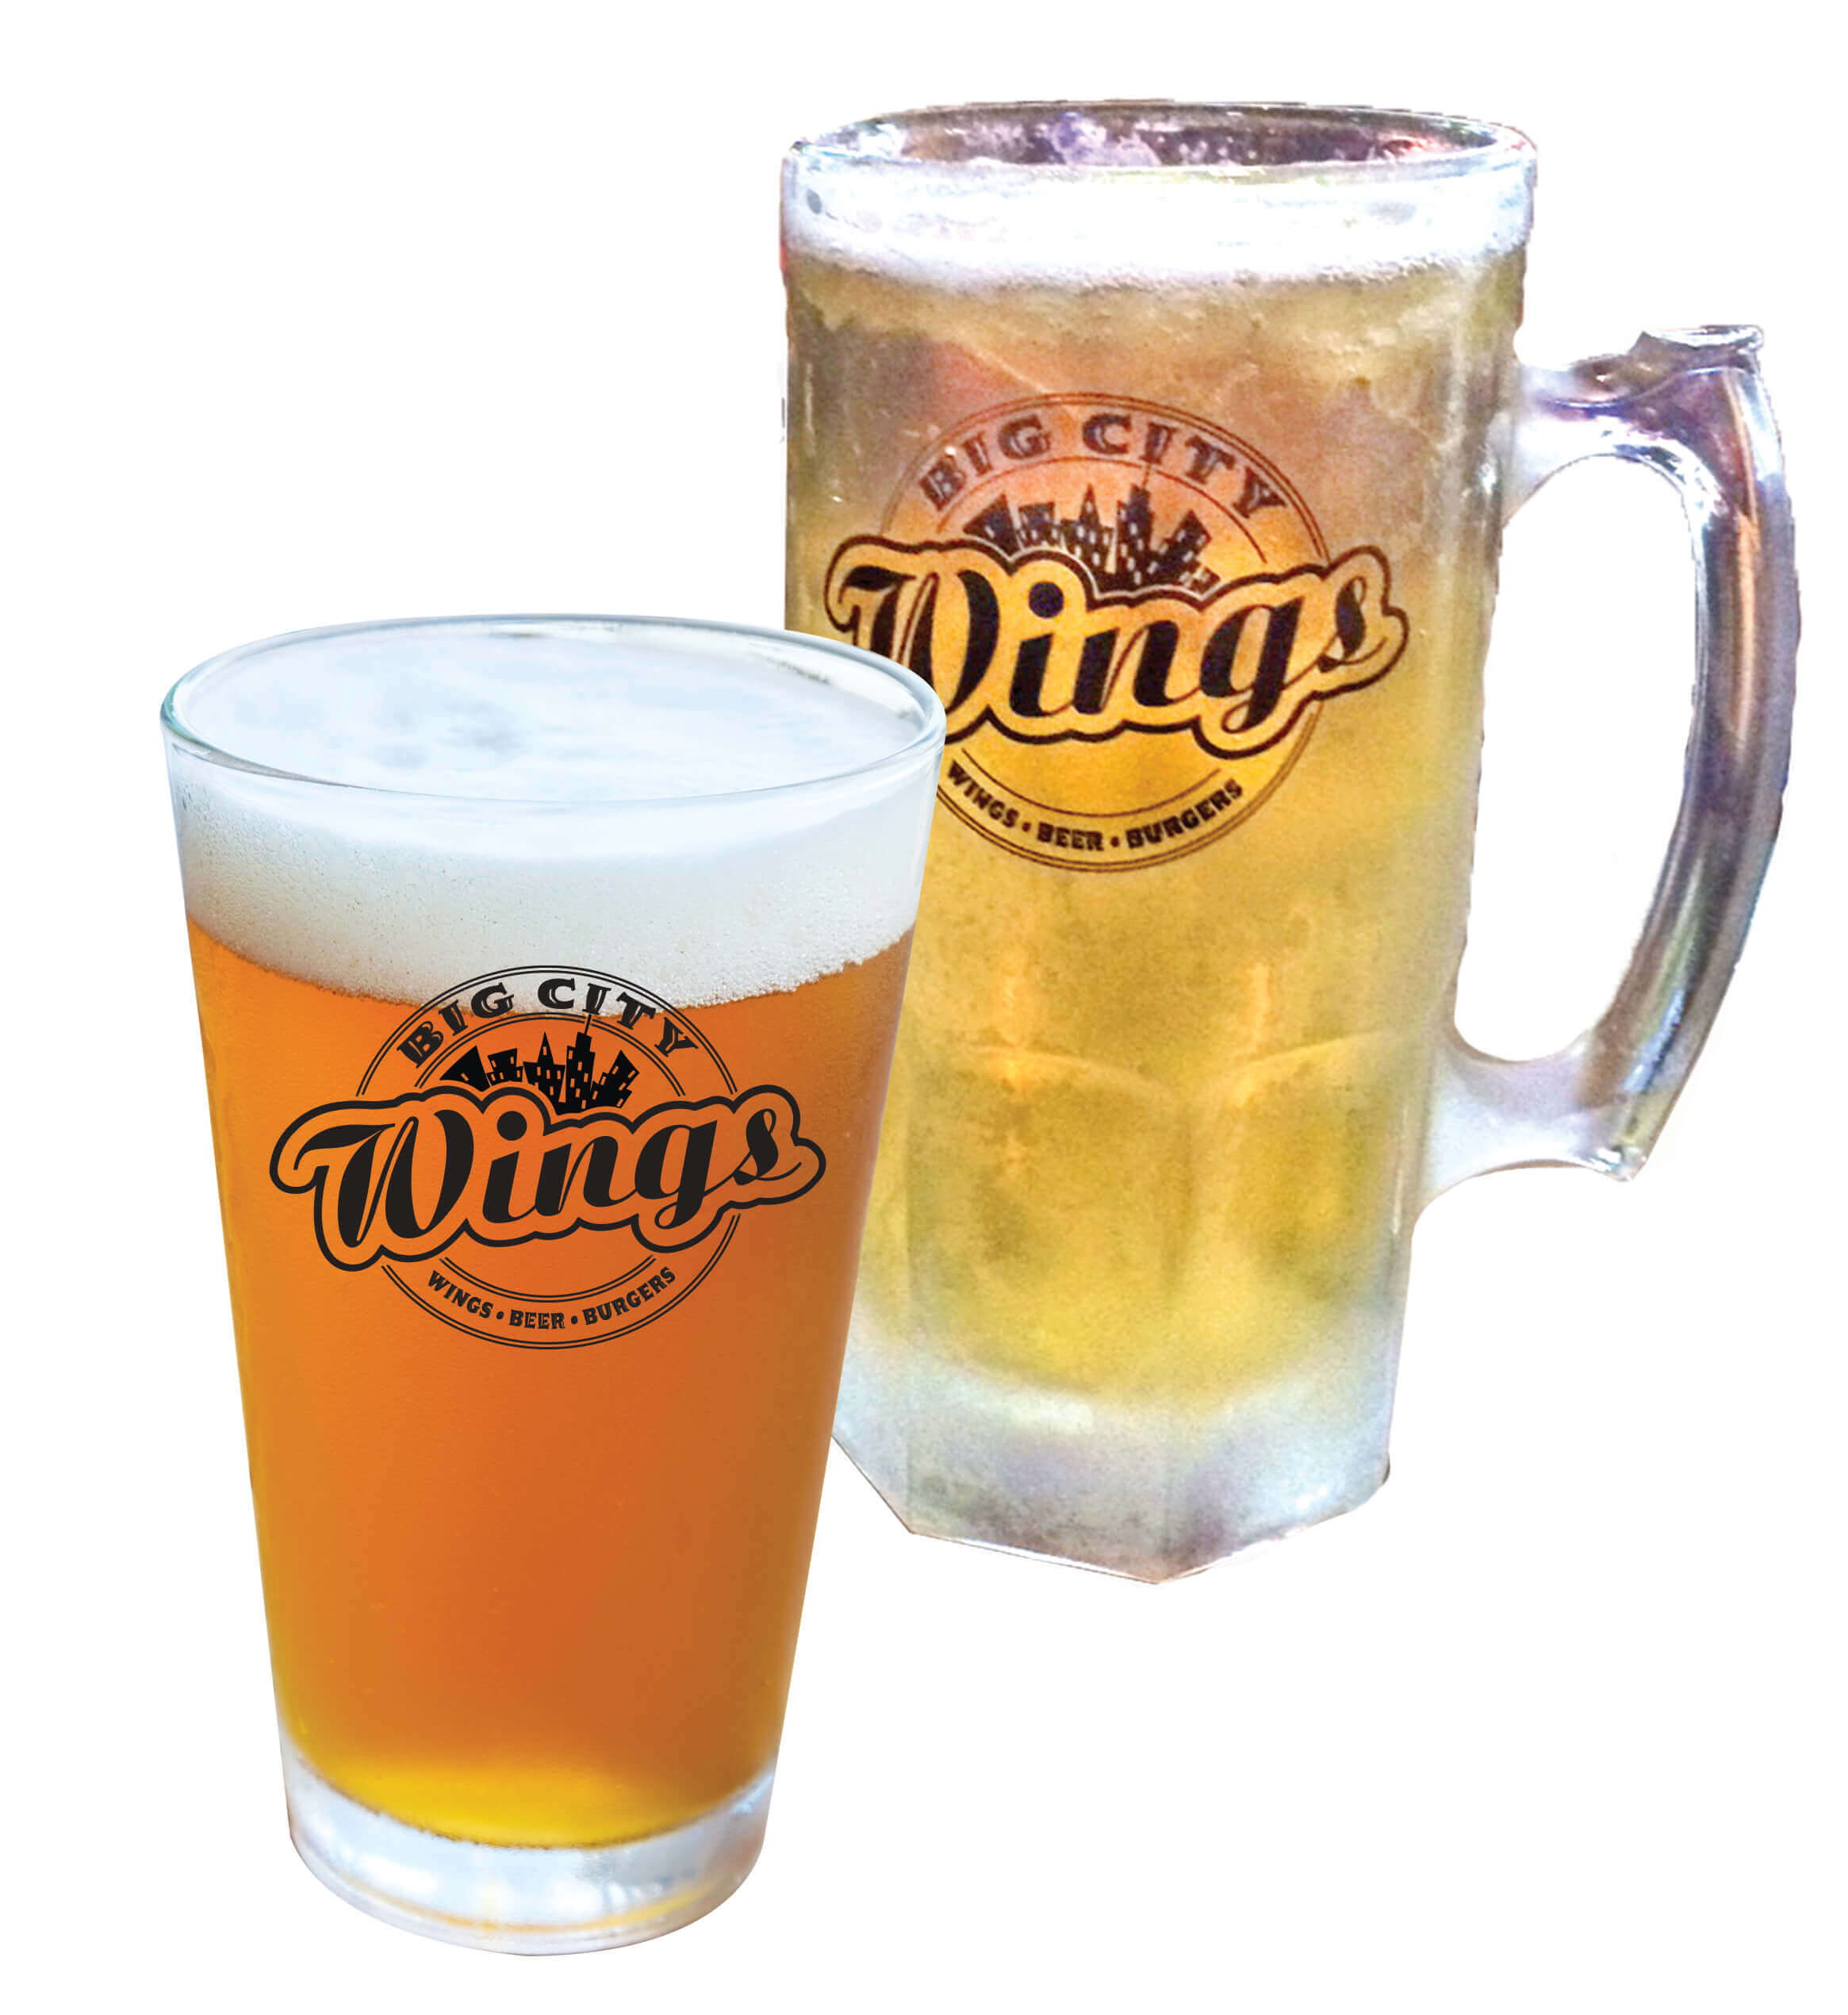 Beverages - Big City Wings soft drinks, beer, wine, +